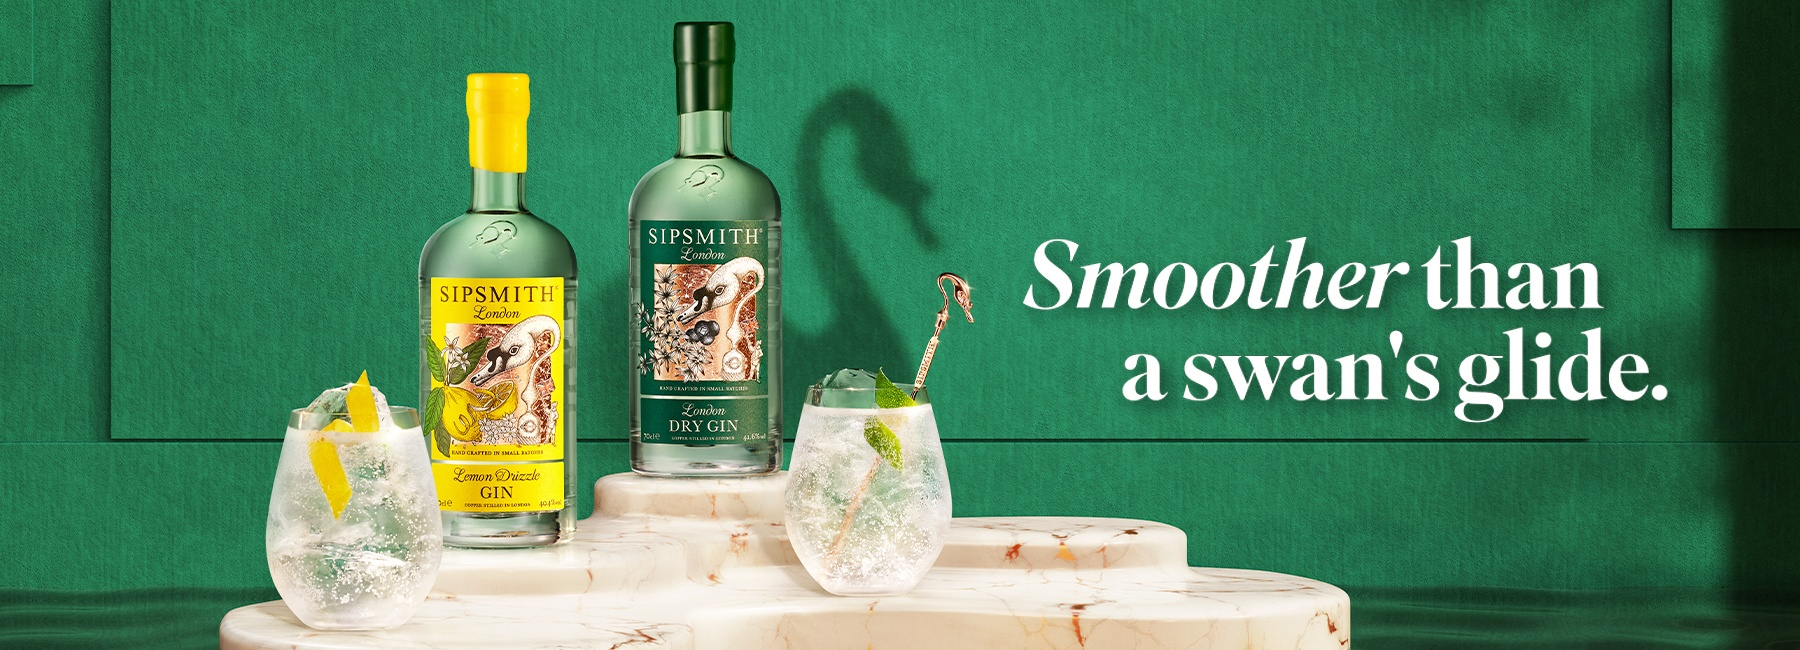 sipsmith gin banner